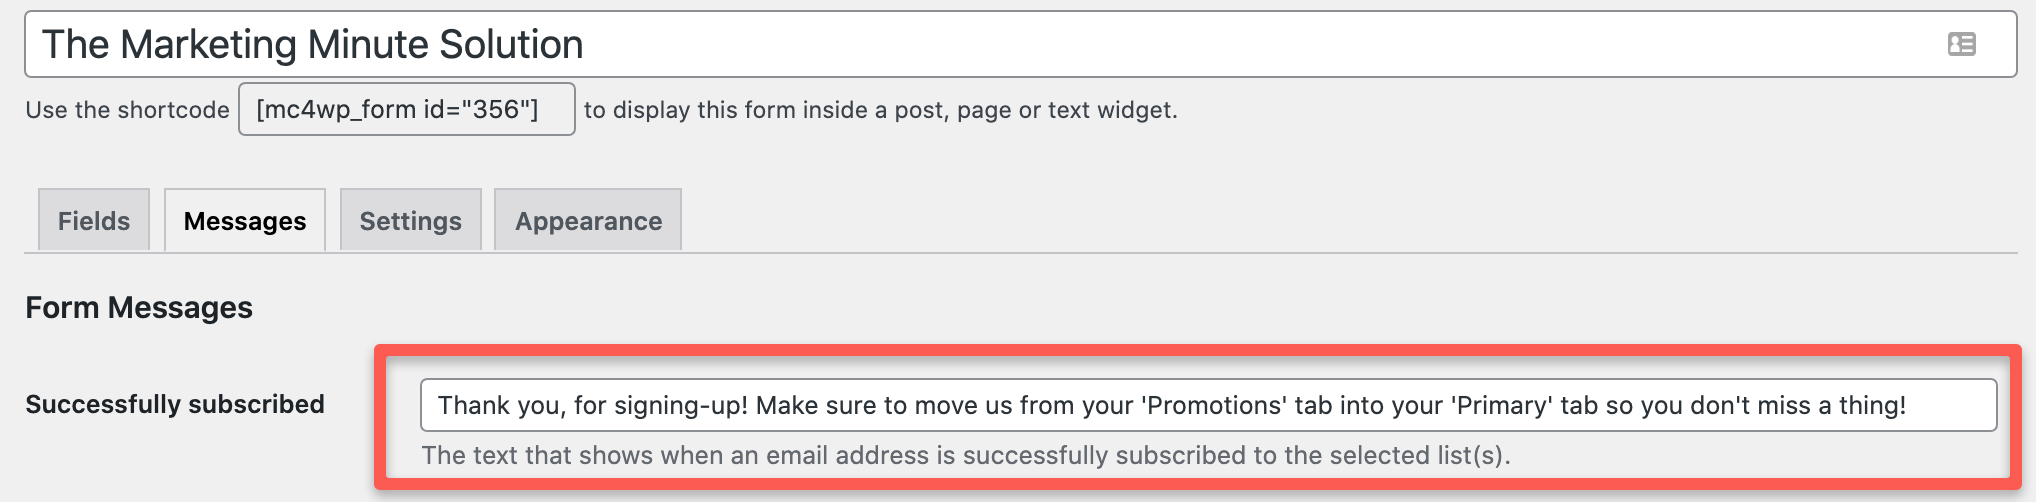 Gmail Promotions and Primary Tab email copywriting tips